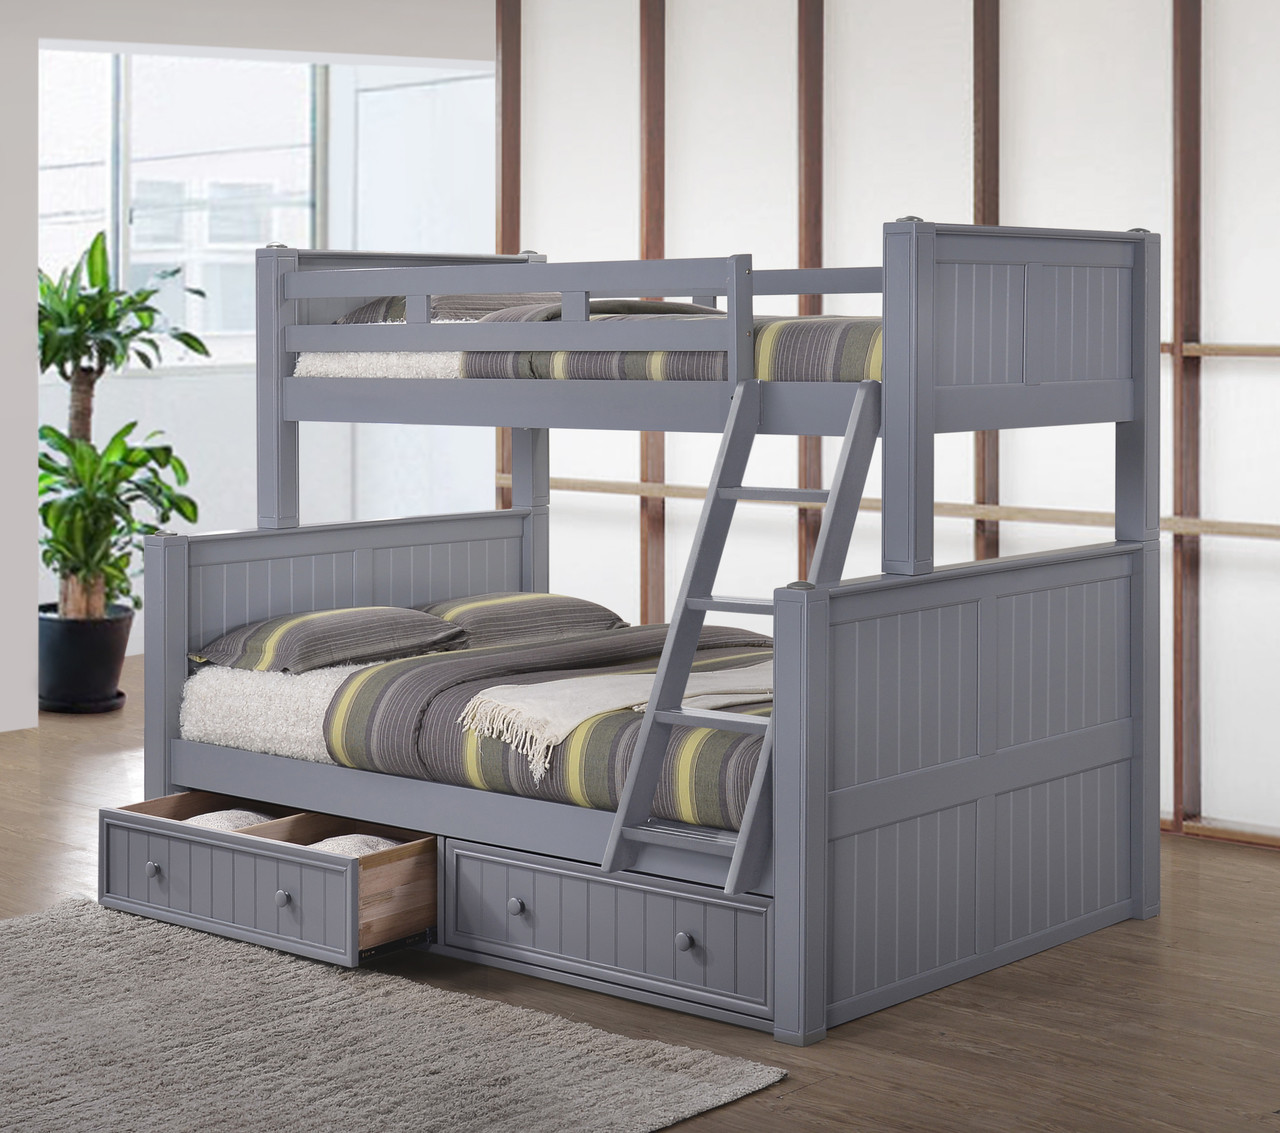 Dillon Square Posts White Twin Full Bunk Bed | White Bunk Bed